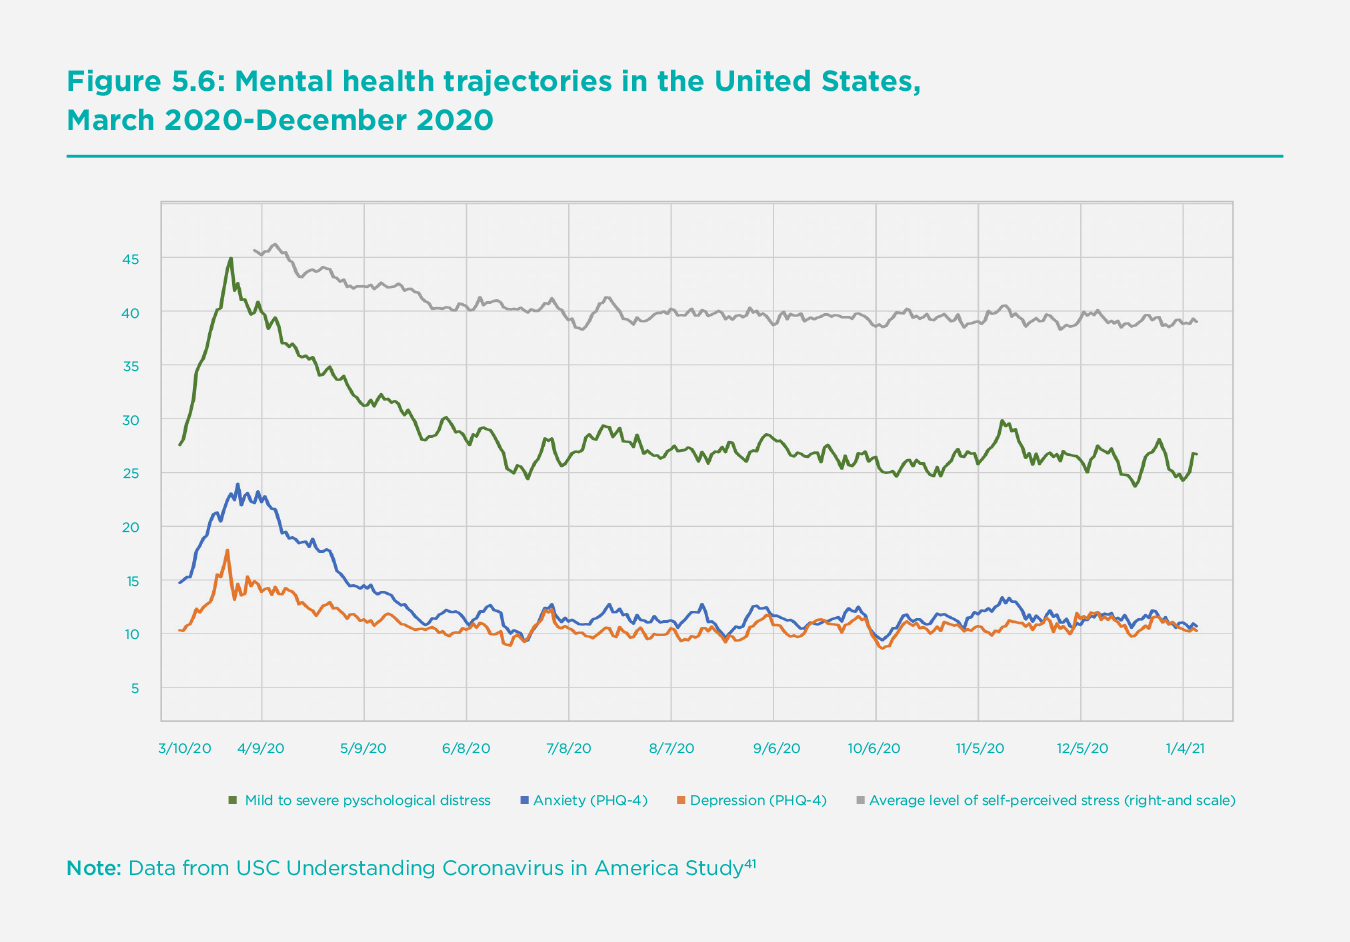 Figure 5.6 Mental health trajectories in the United States, March 2020-December 2020